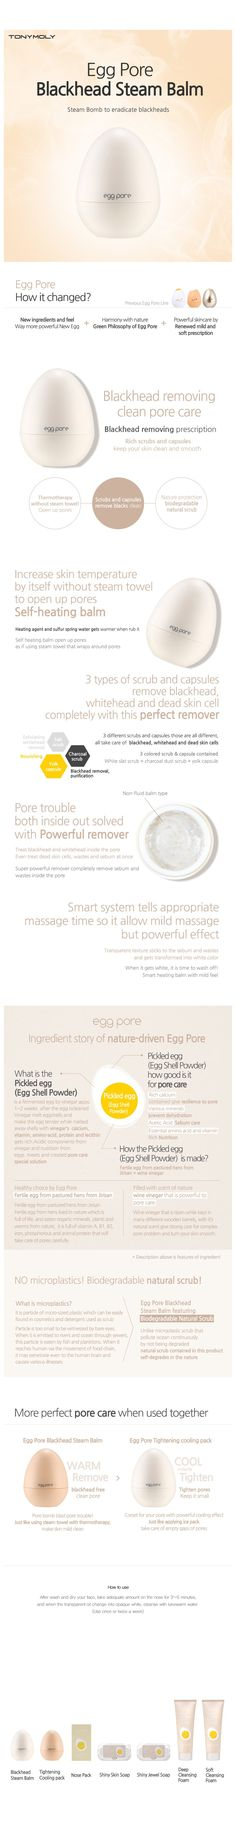 Egg Pore Blackhead Steam Balm - PACK; My favorite blackhead fighting product!!!!! <3 J